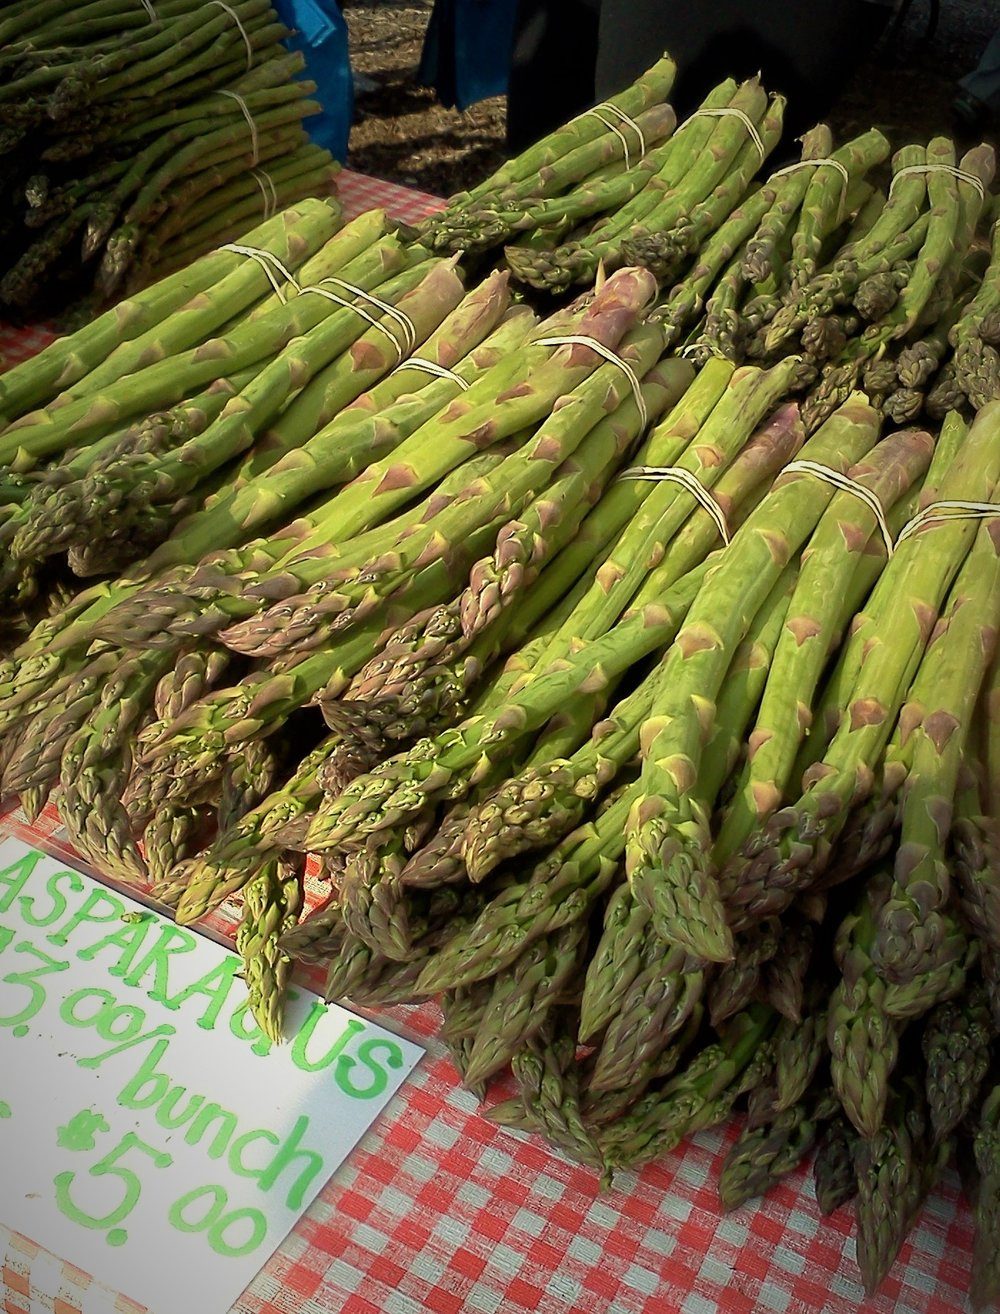 Asparagus - How to Pick, Store, and CookChoosing Organic, Eating Local, In-SeasonHealthy, Plant-Based, Oil-Free Vegan Recipes